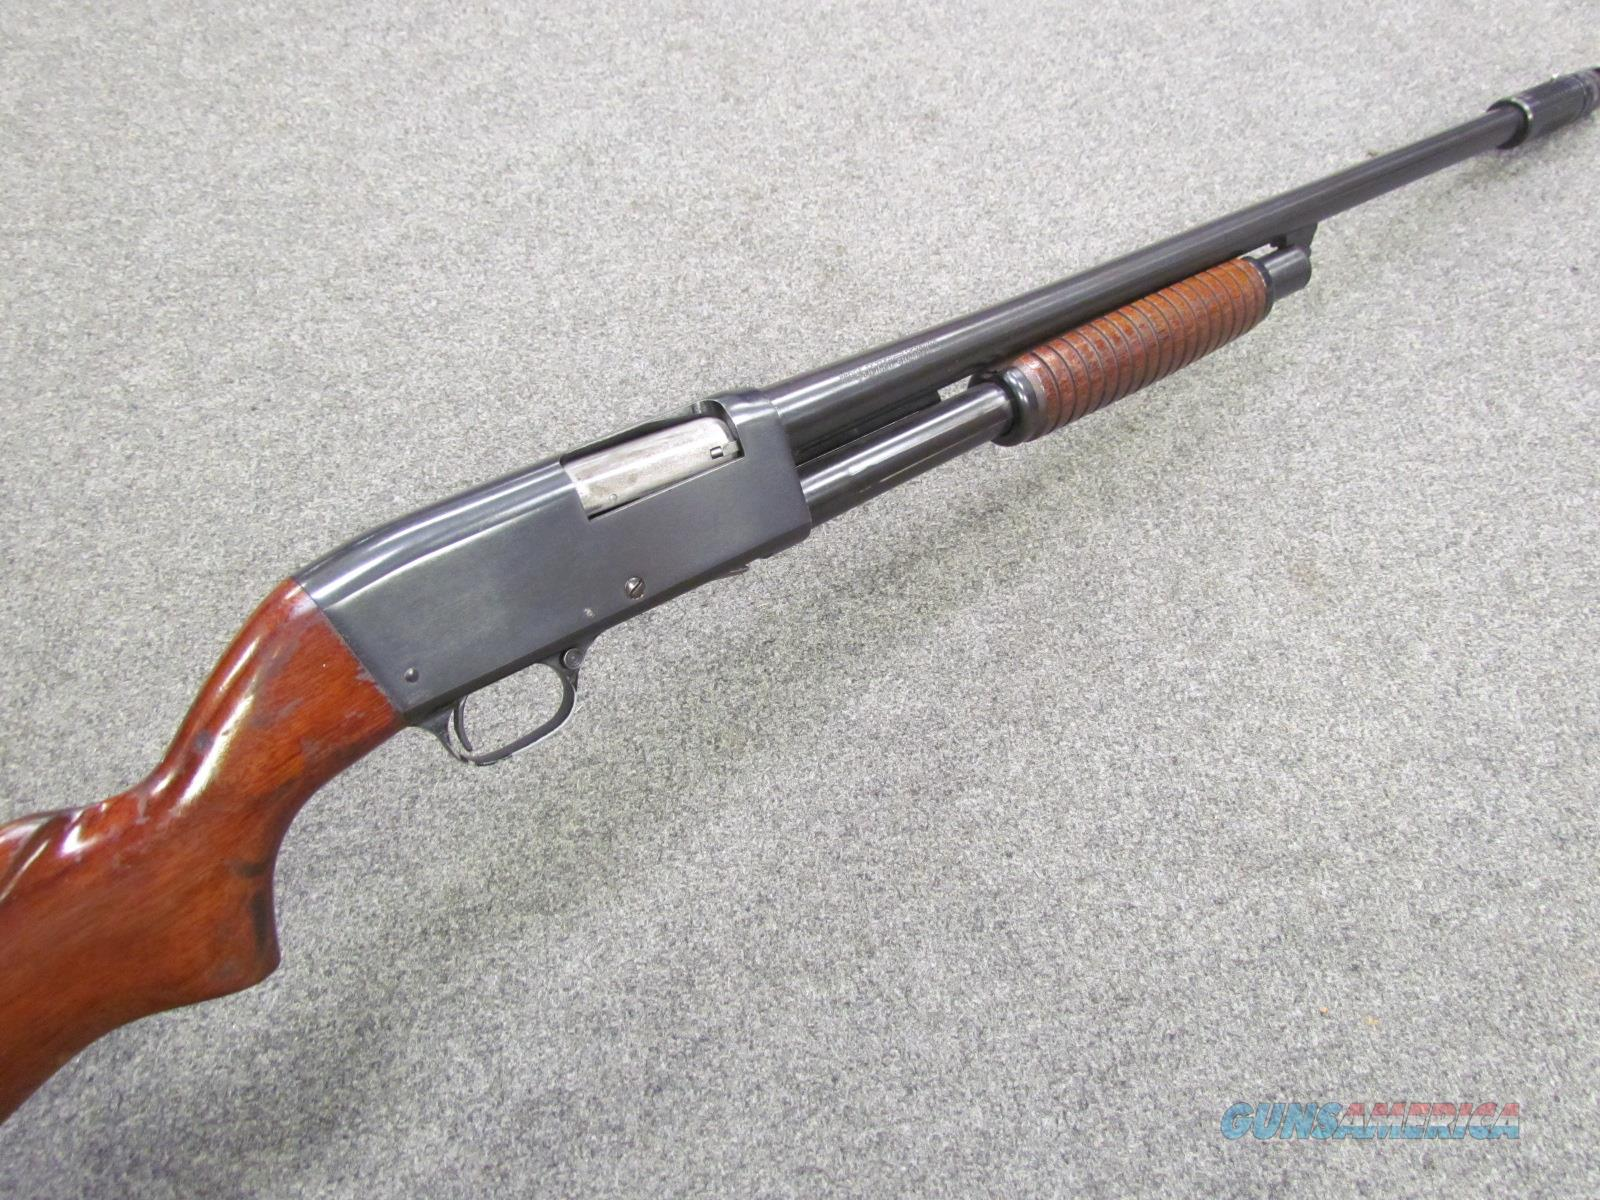 Awesome stevens savage model 820 b 12 ga for sale for 820 12